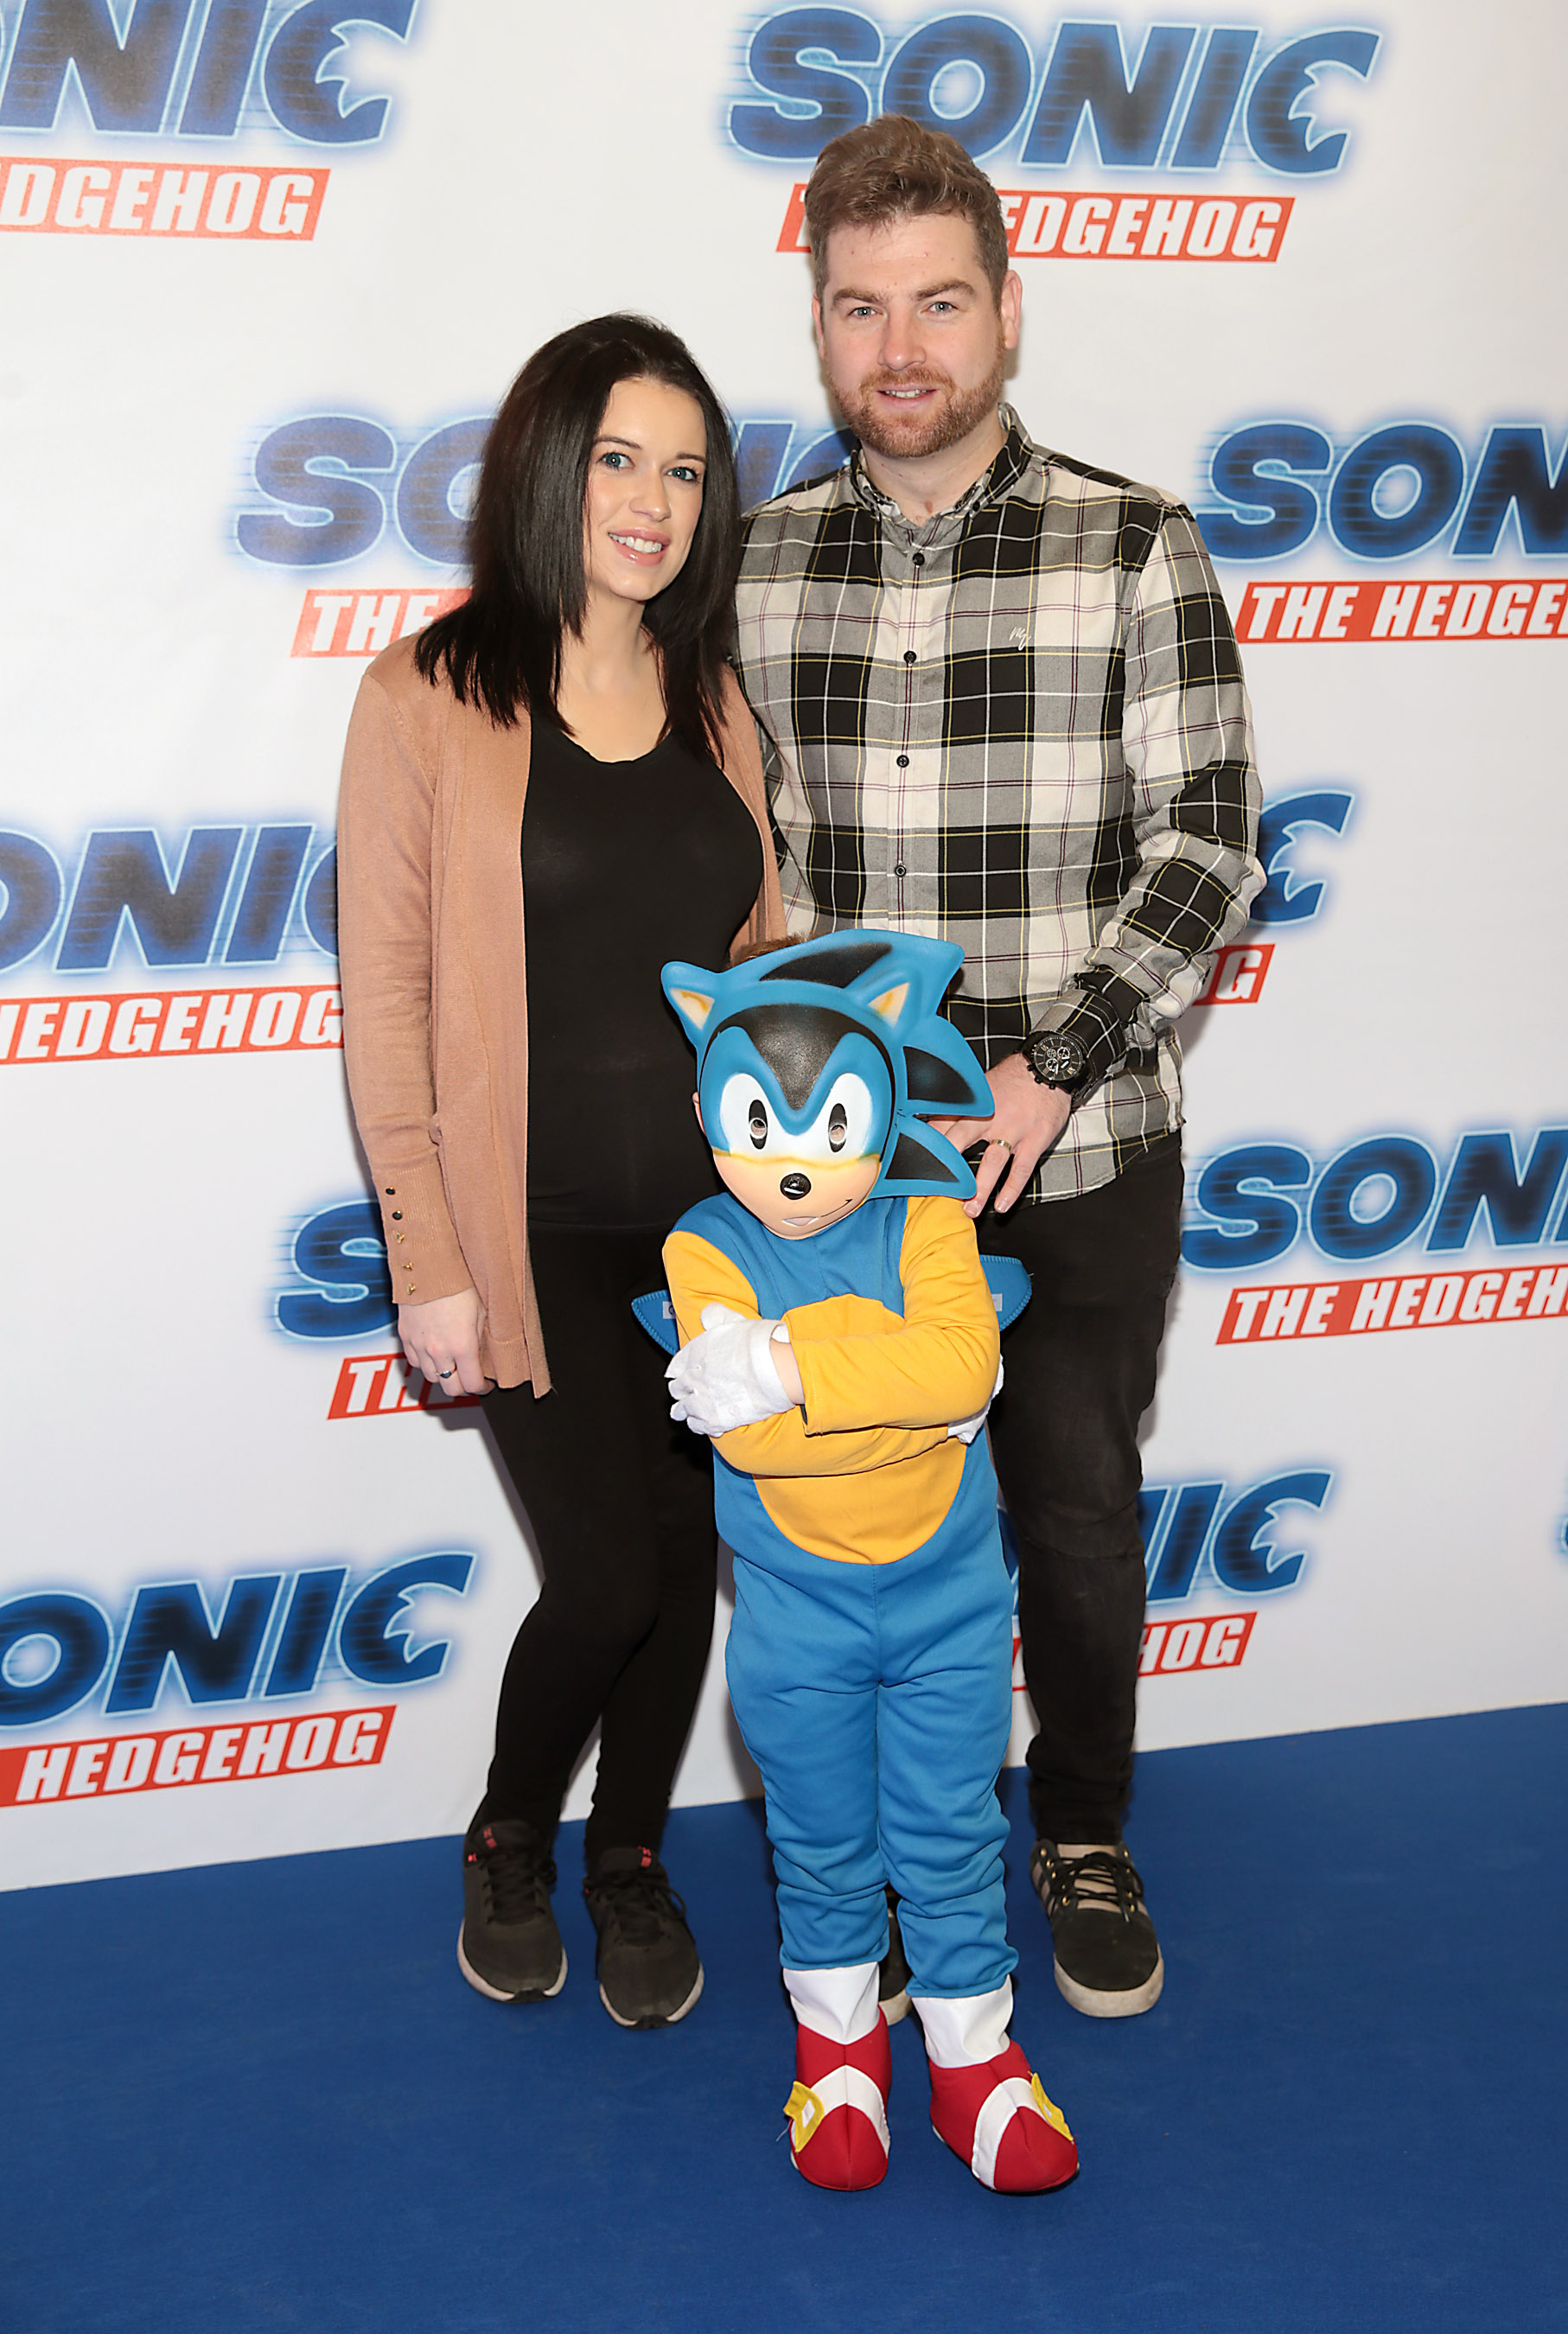 Martin O'Connell, Sarah O'Connell and Cameron O'Connell at the special preview screening of Sonic the Hedgehog Movie at the Odeon Cinema in Point Square, Dublin. Pic: Brian McEvoy